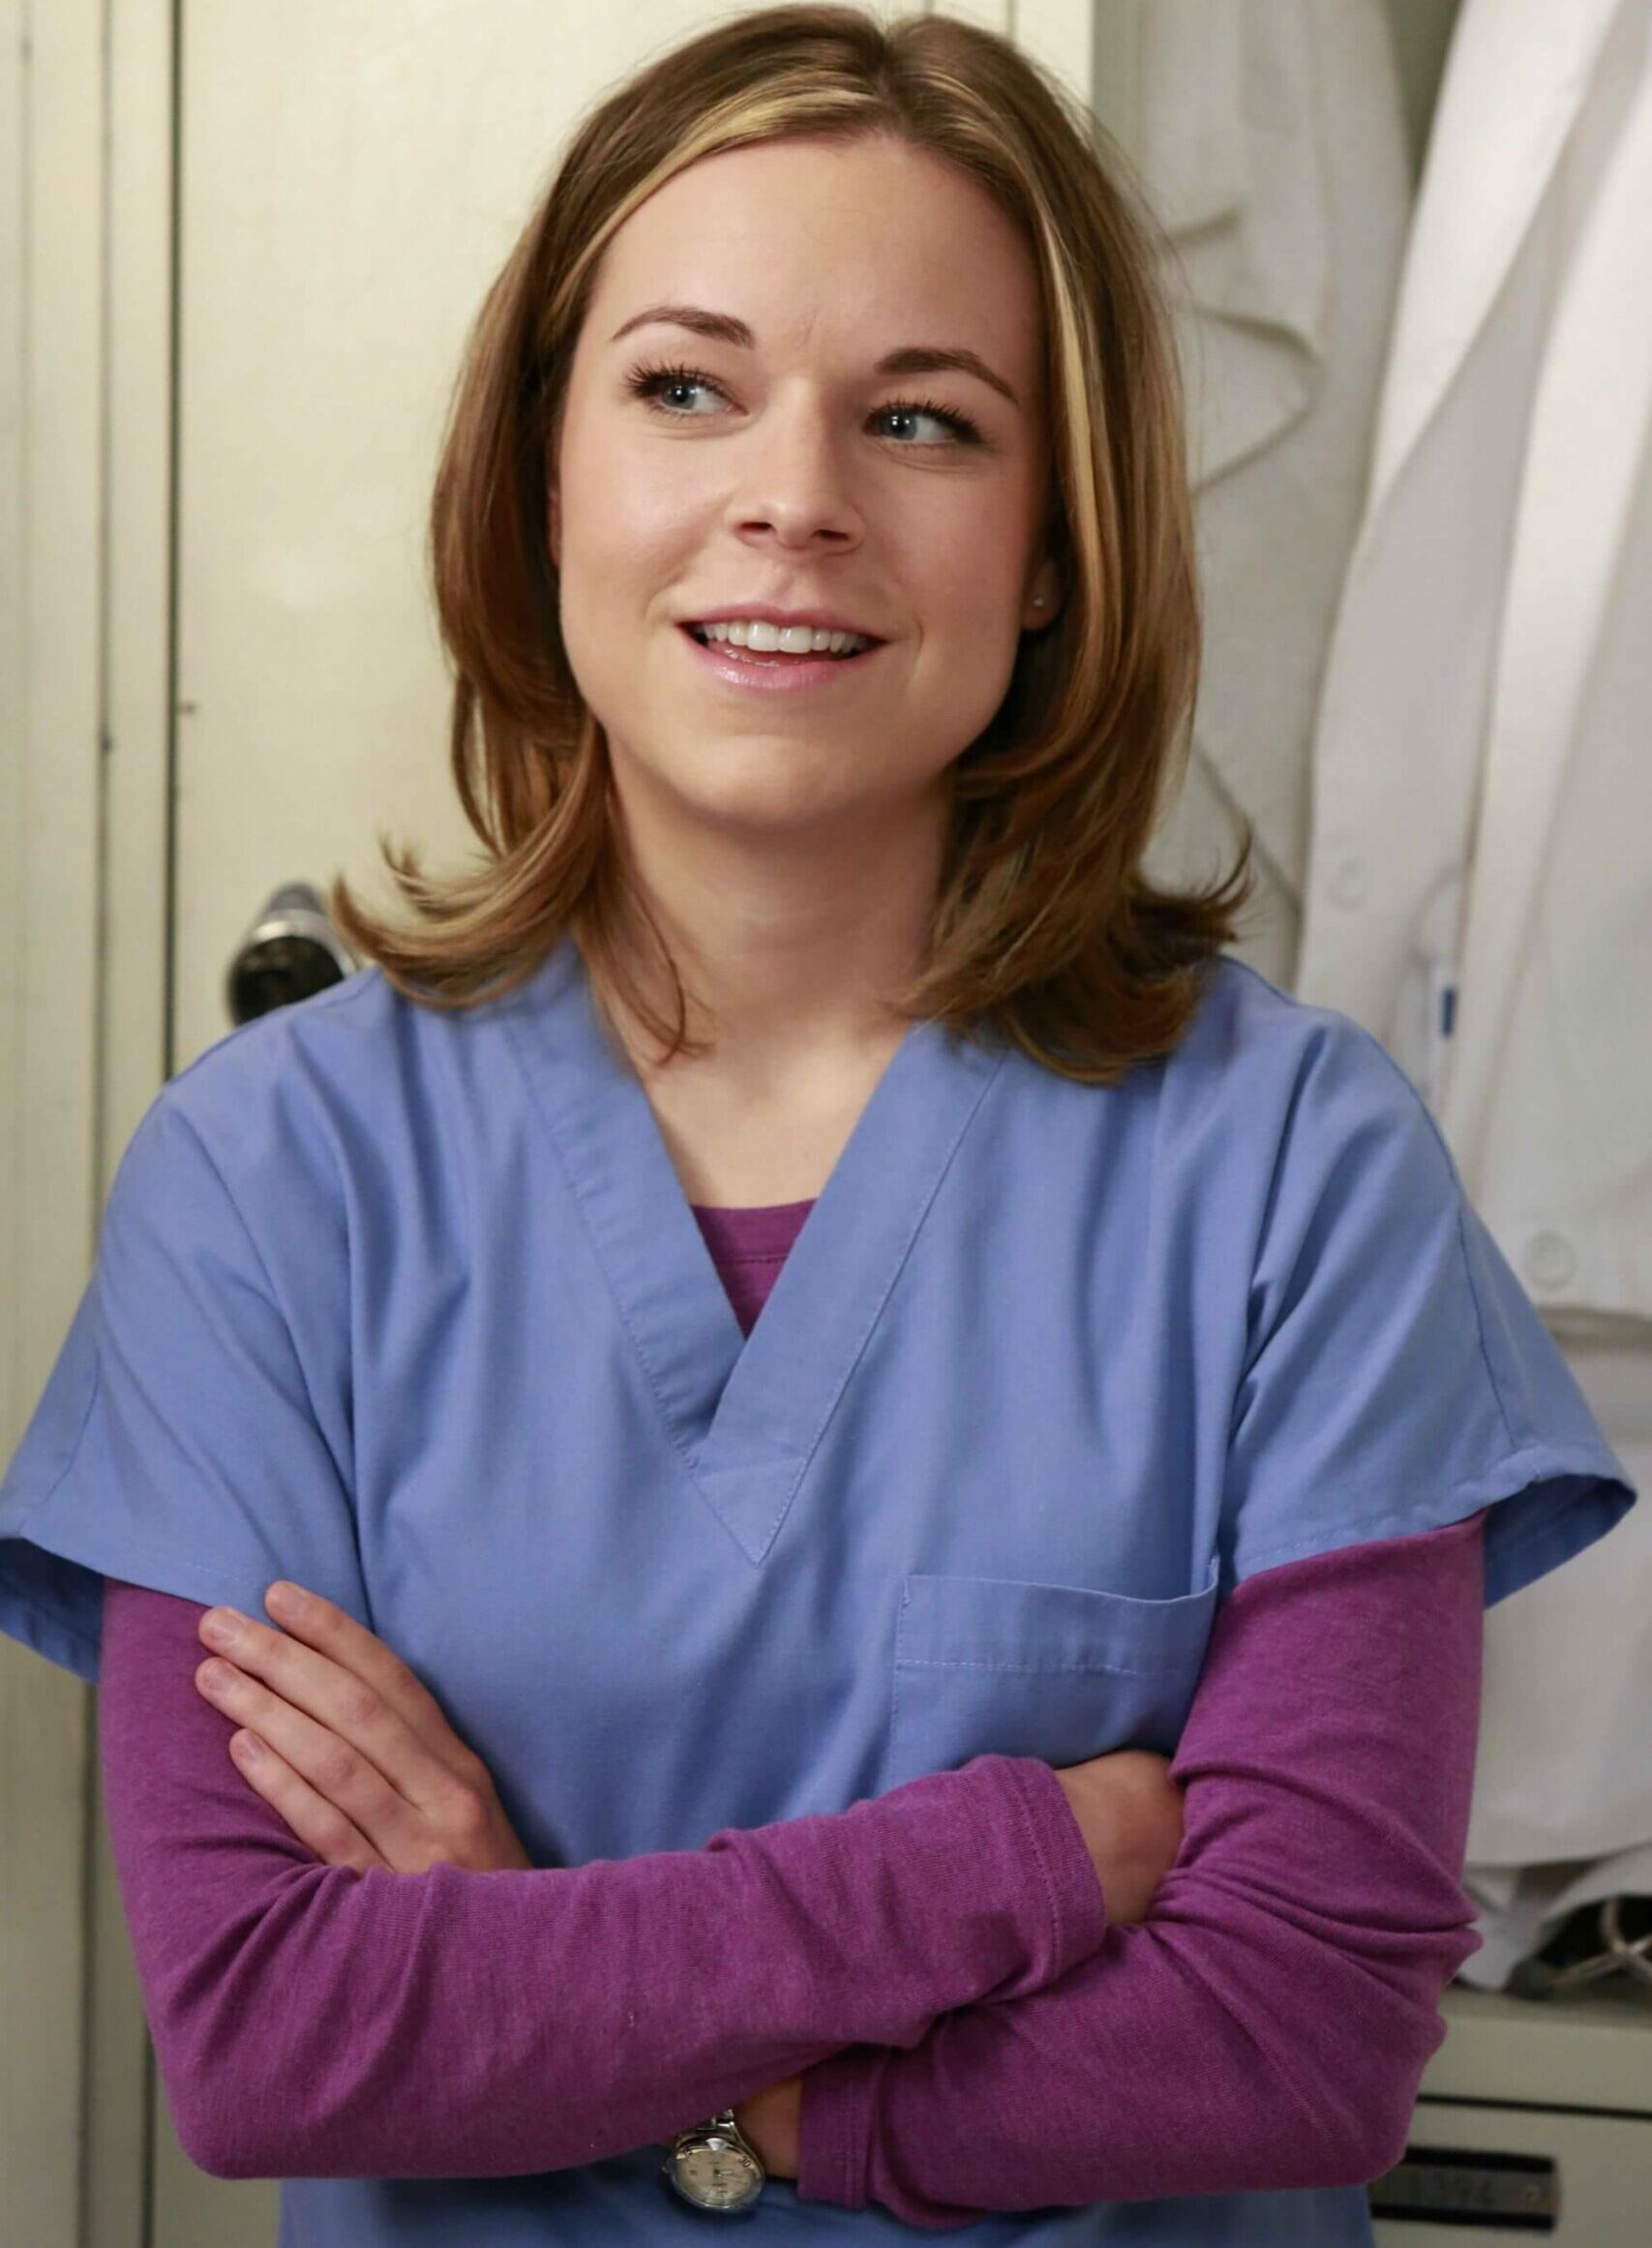 Tina as Dr Heather Brooks in Grey's Anatomy